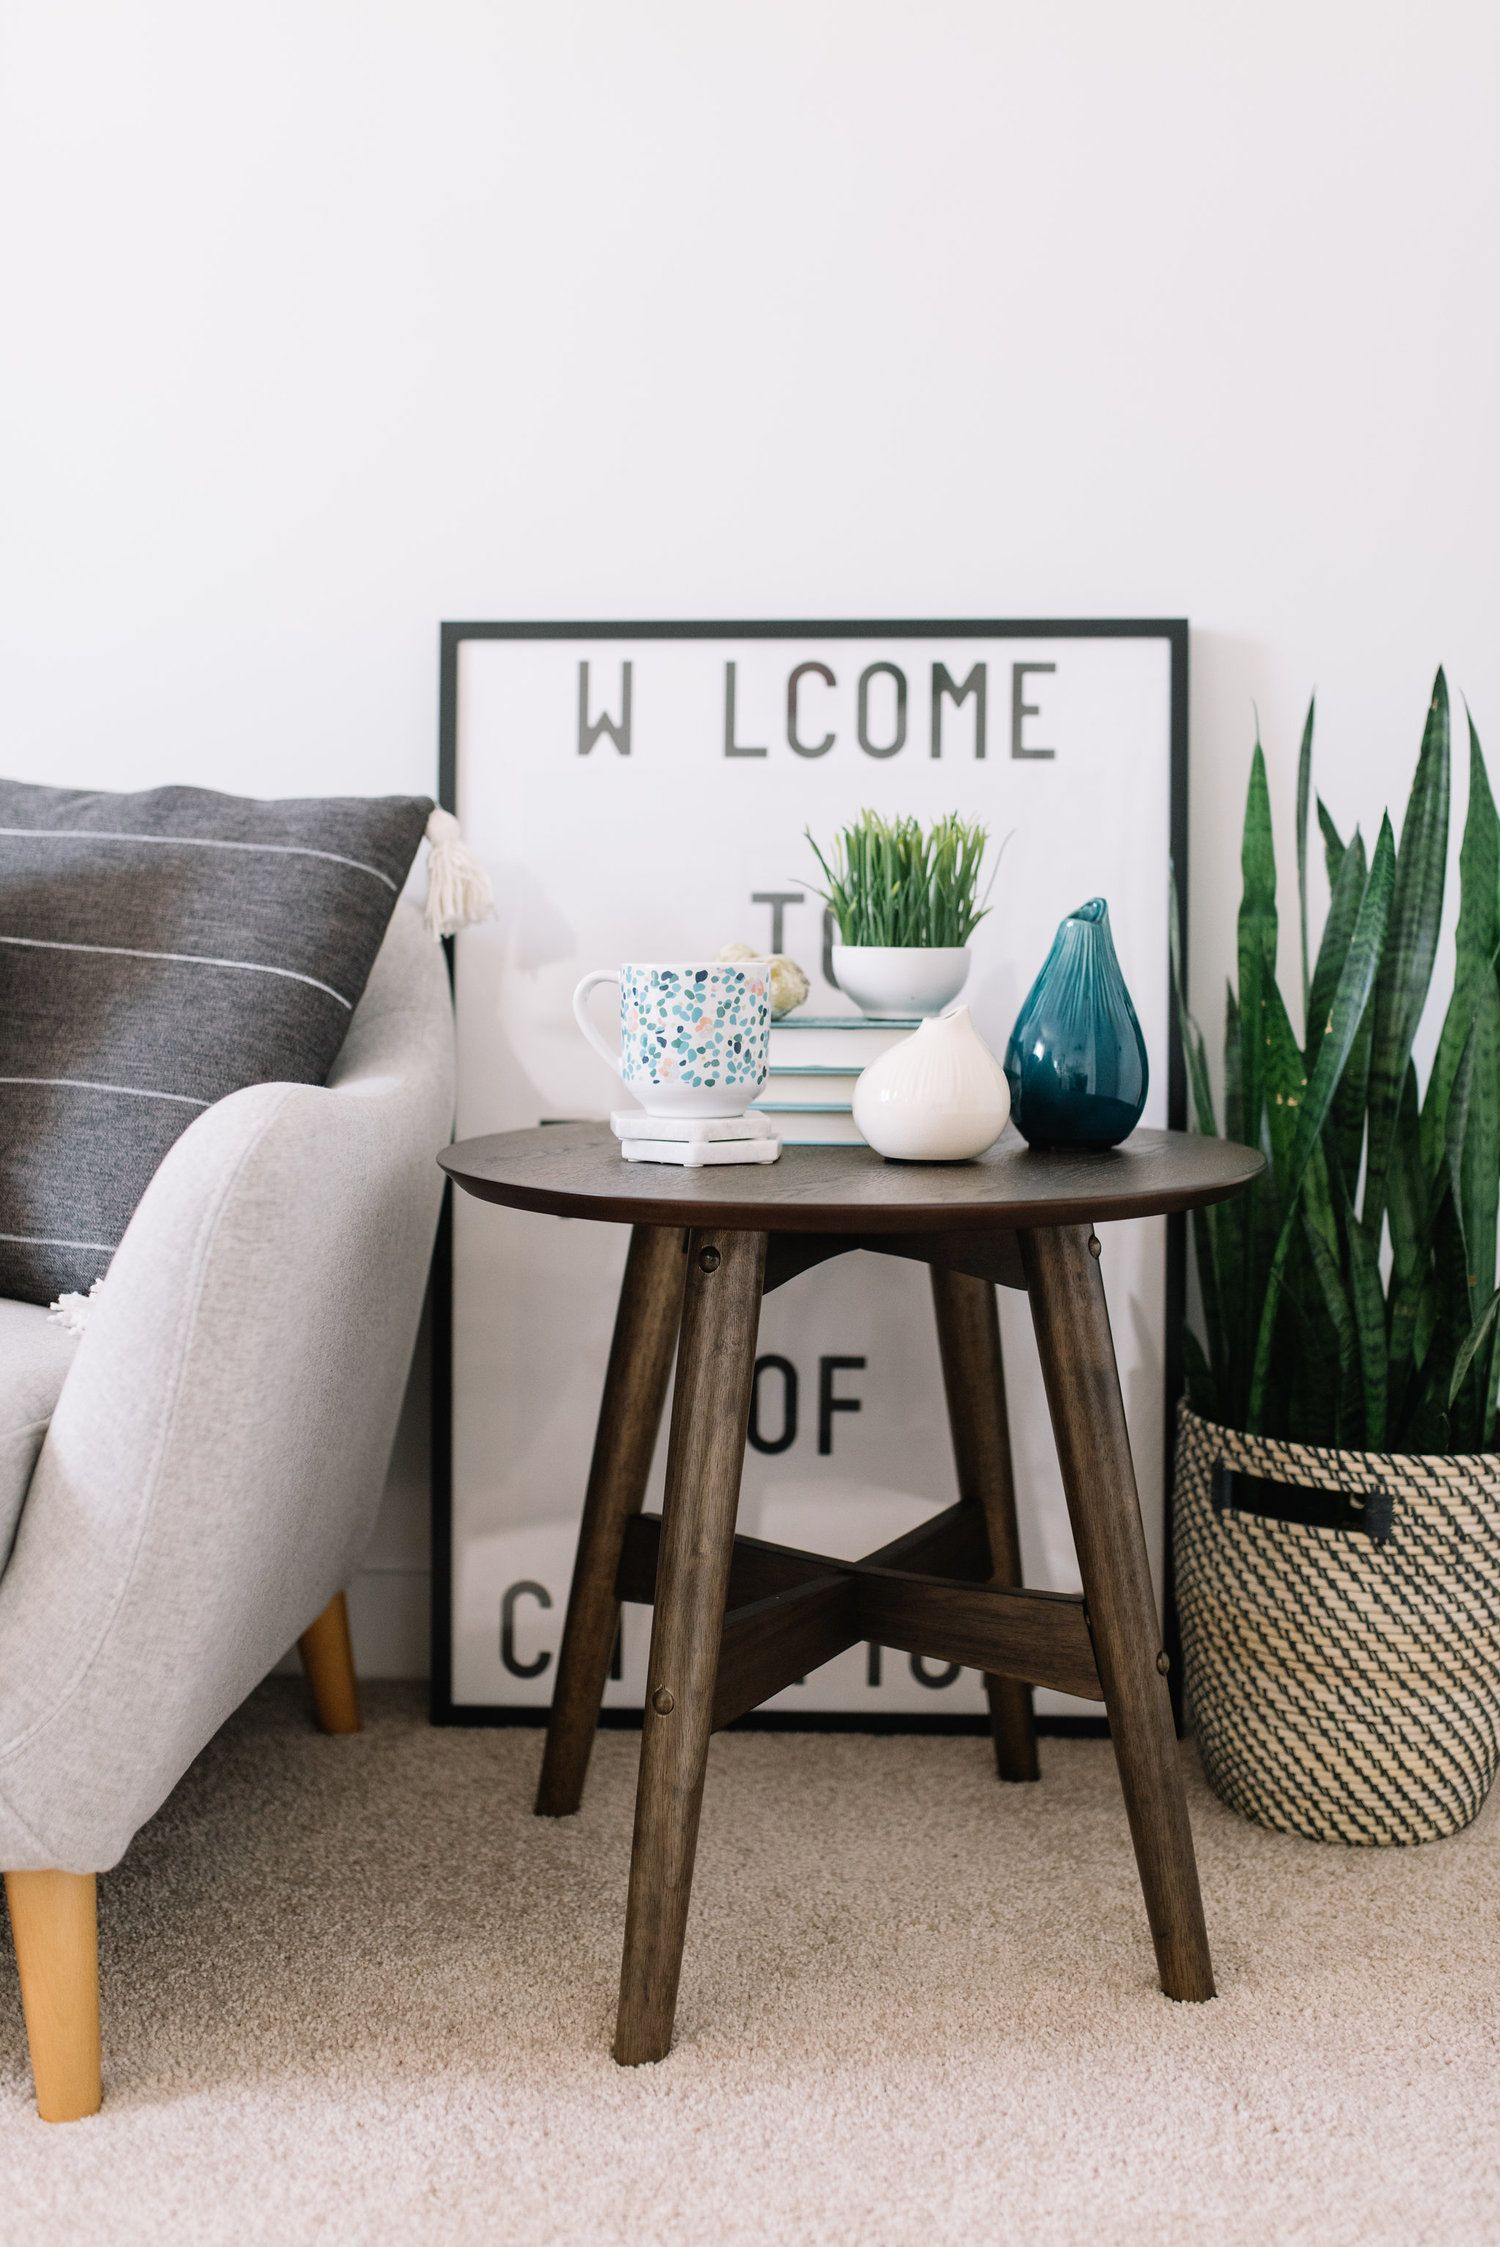 3 Ways To Use A Small Side Table 204 Park Round Table Decor Small Table Decor Round Living Room Table